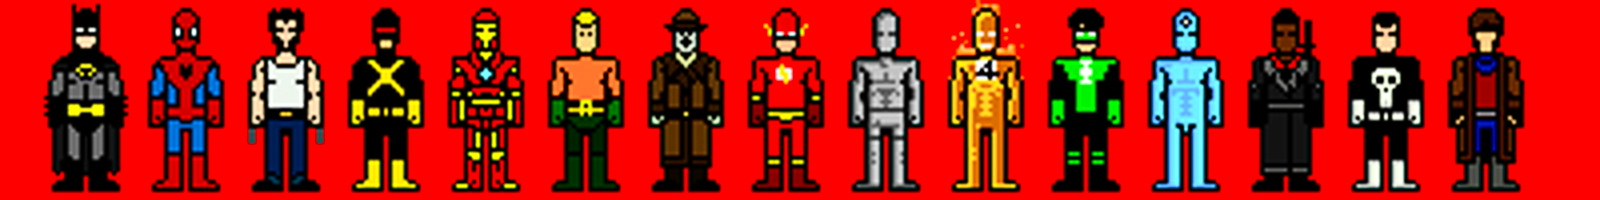 pixelated super heroes